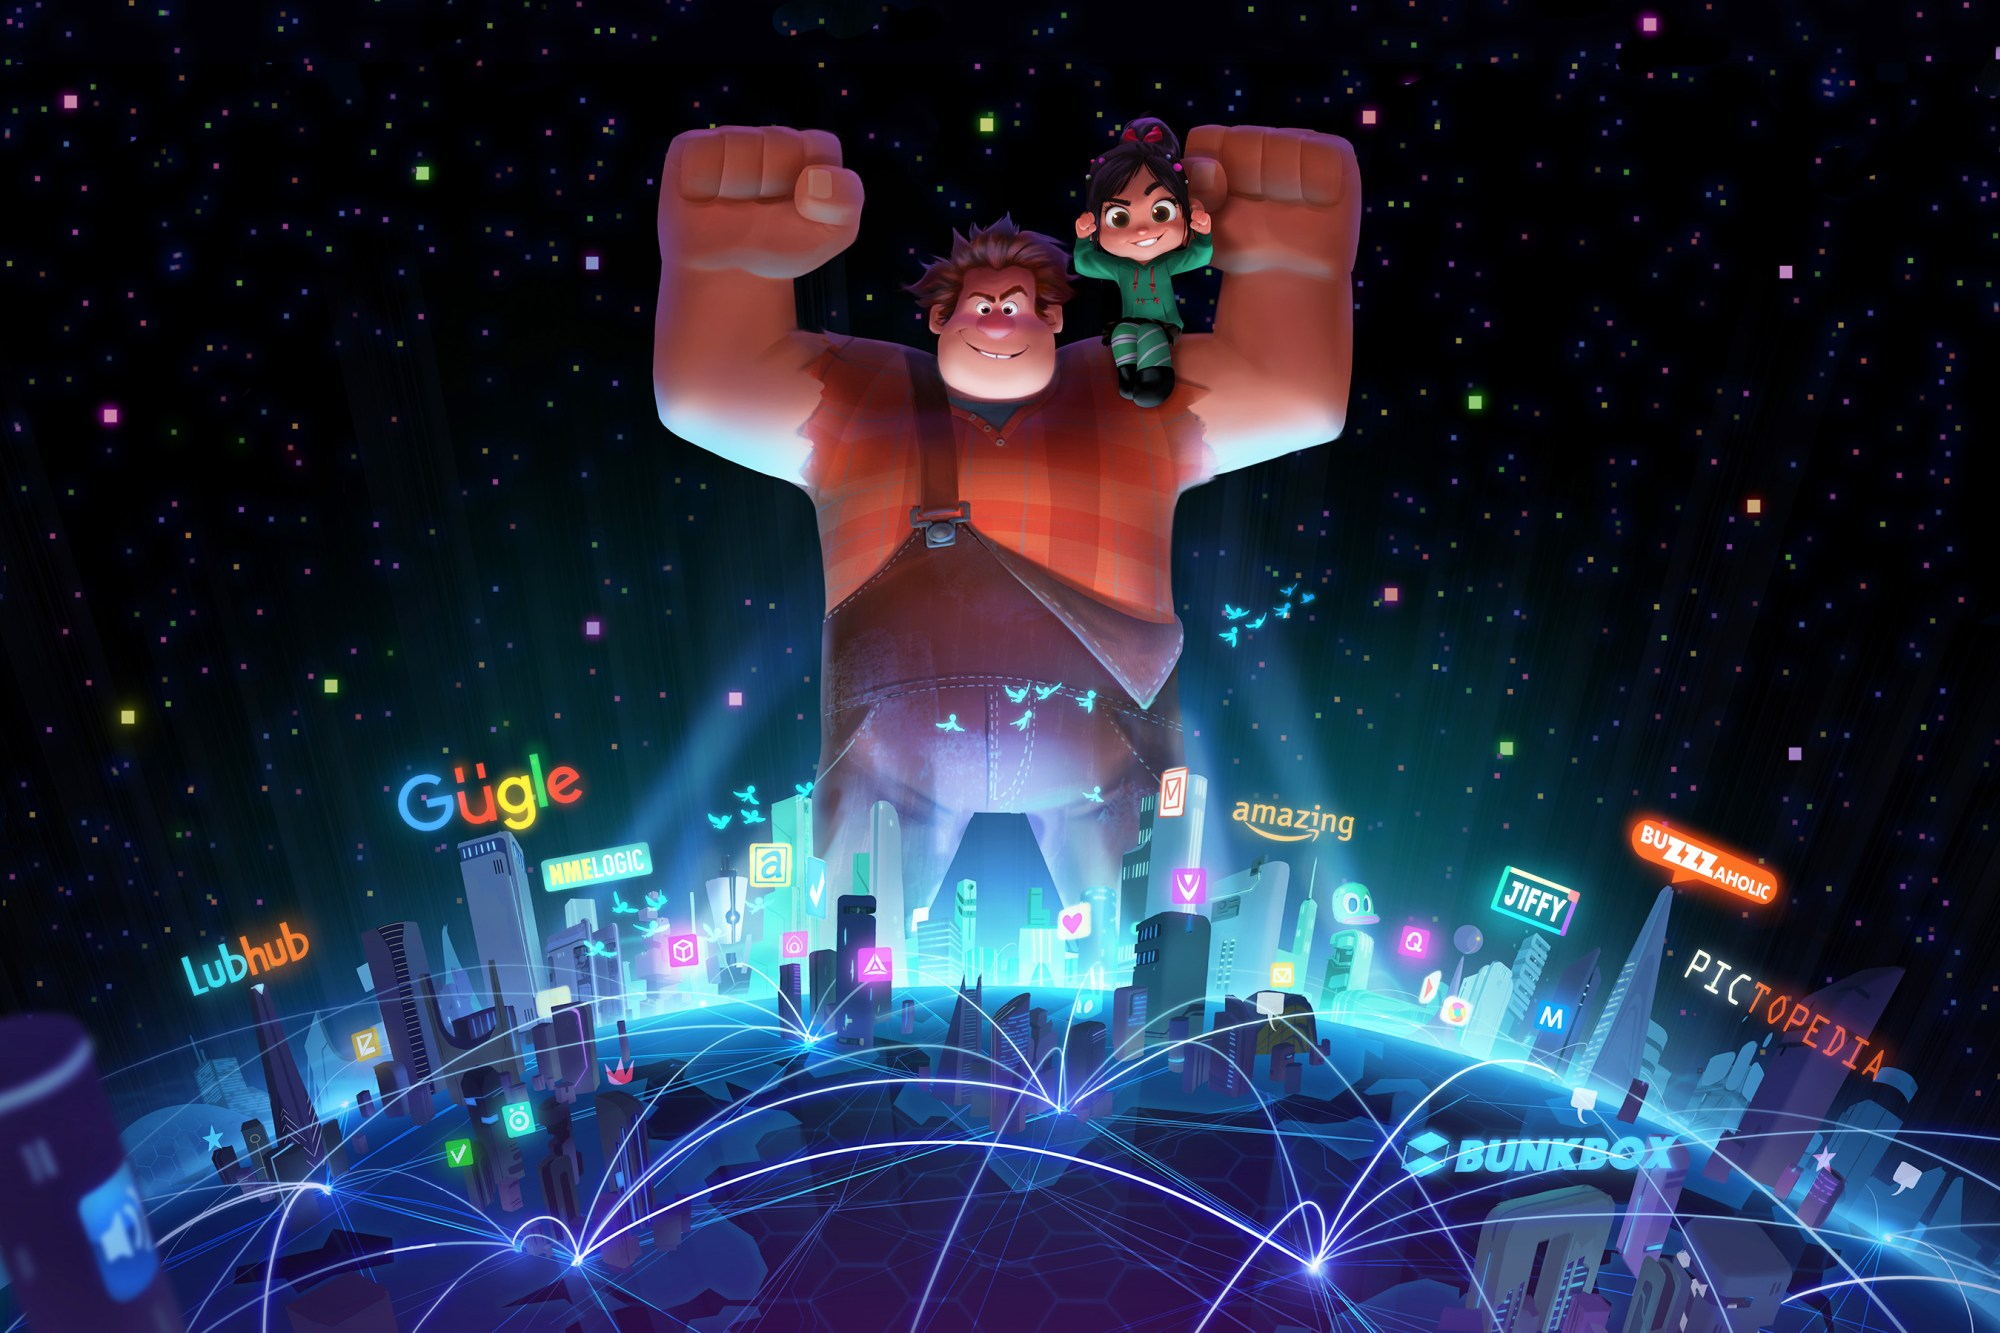 Disney's Wreck-It Ralph Sequel Gets a Title and a Release Date